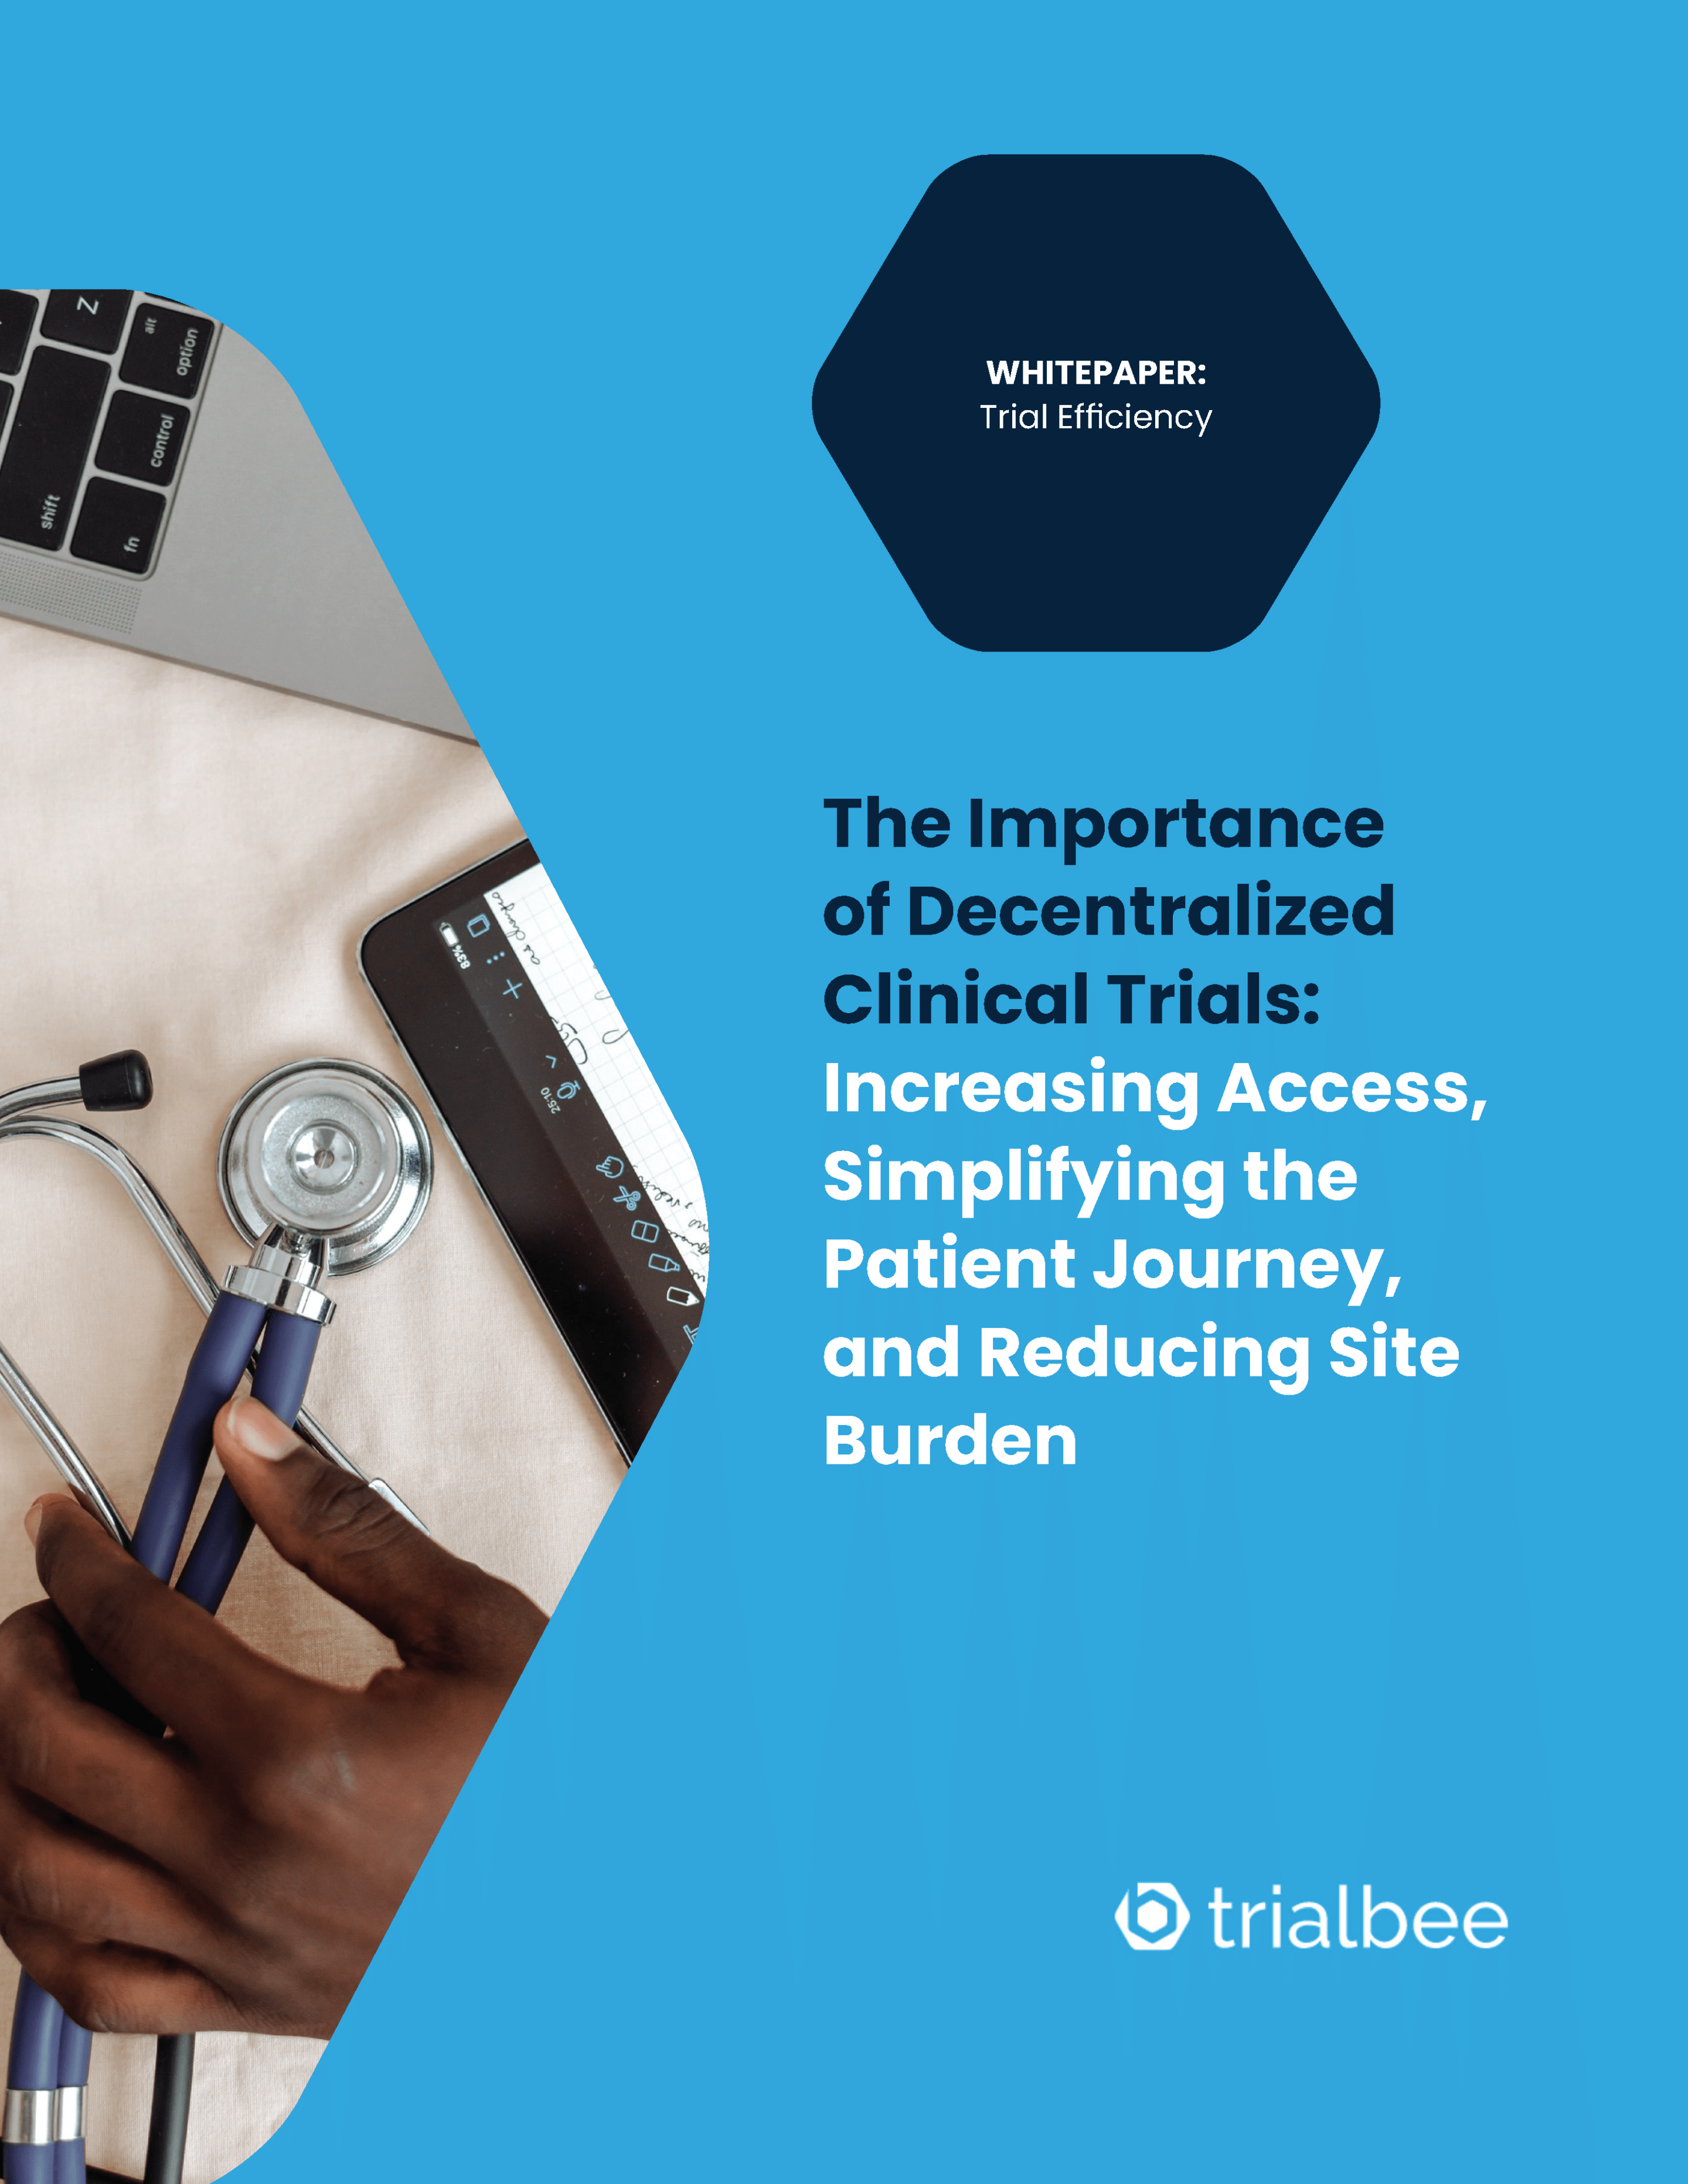 The Importance of Decentralized Clinical Trials: Increasing Access, Simplifying the Patient Journey and Reducing Site Burden